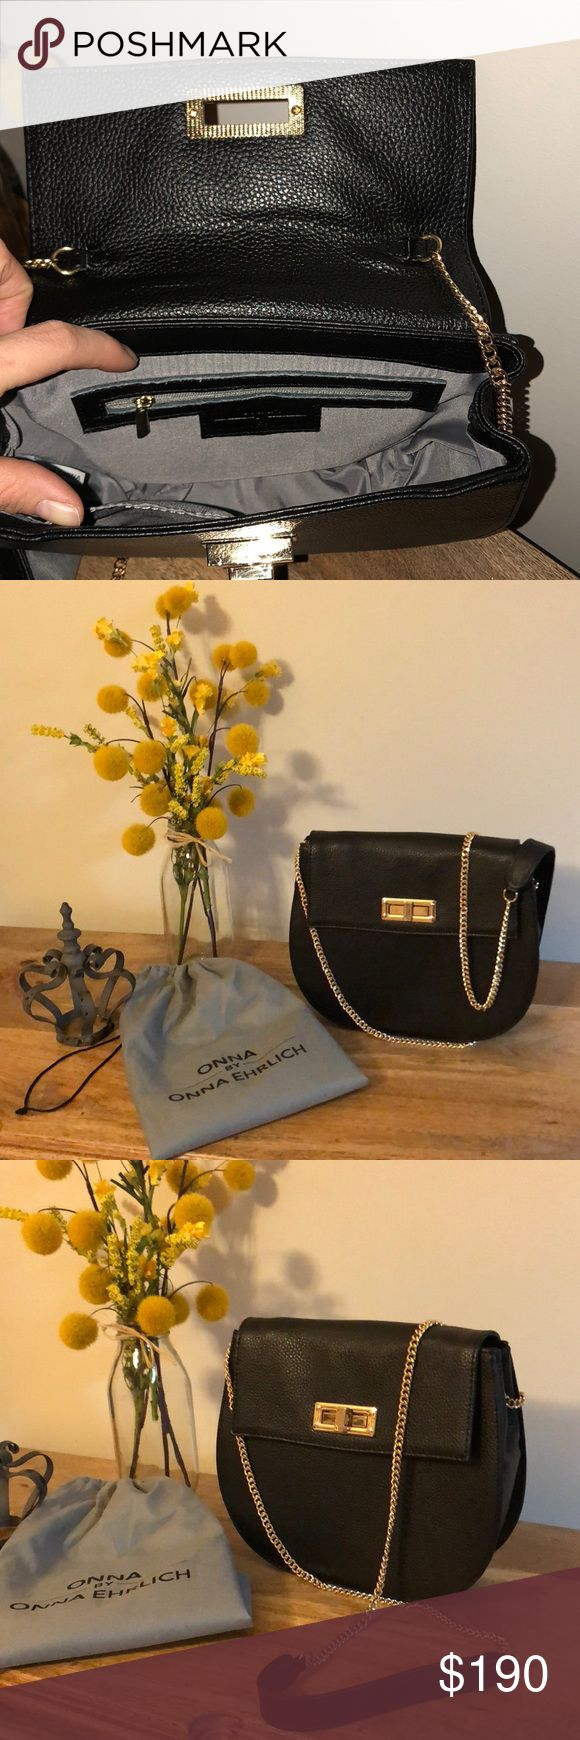 Black Leather Crossbody Shoulder Bag Leather and Gold Accent Crossbody Shoulder Bag By: Onna Ehrlich New Without Tags Condition Super Cute for a Night Out Bag Love the Chain link Strap Absolutely Flawless Onna Ehrlich Bags Crossbody Bags